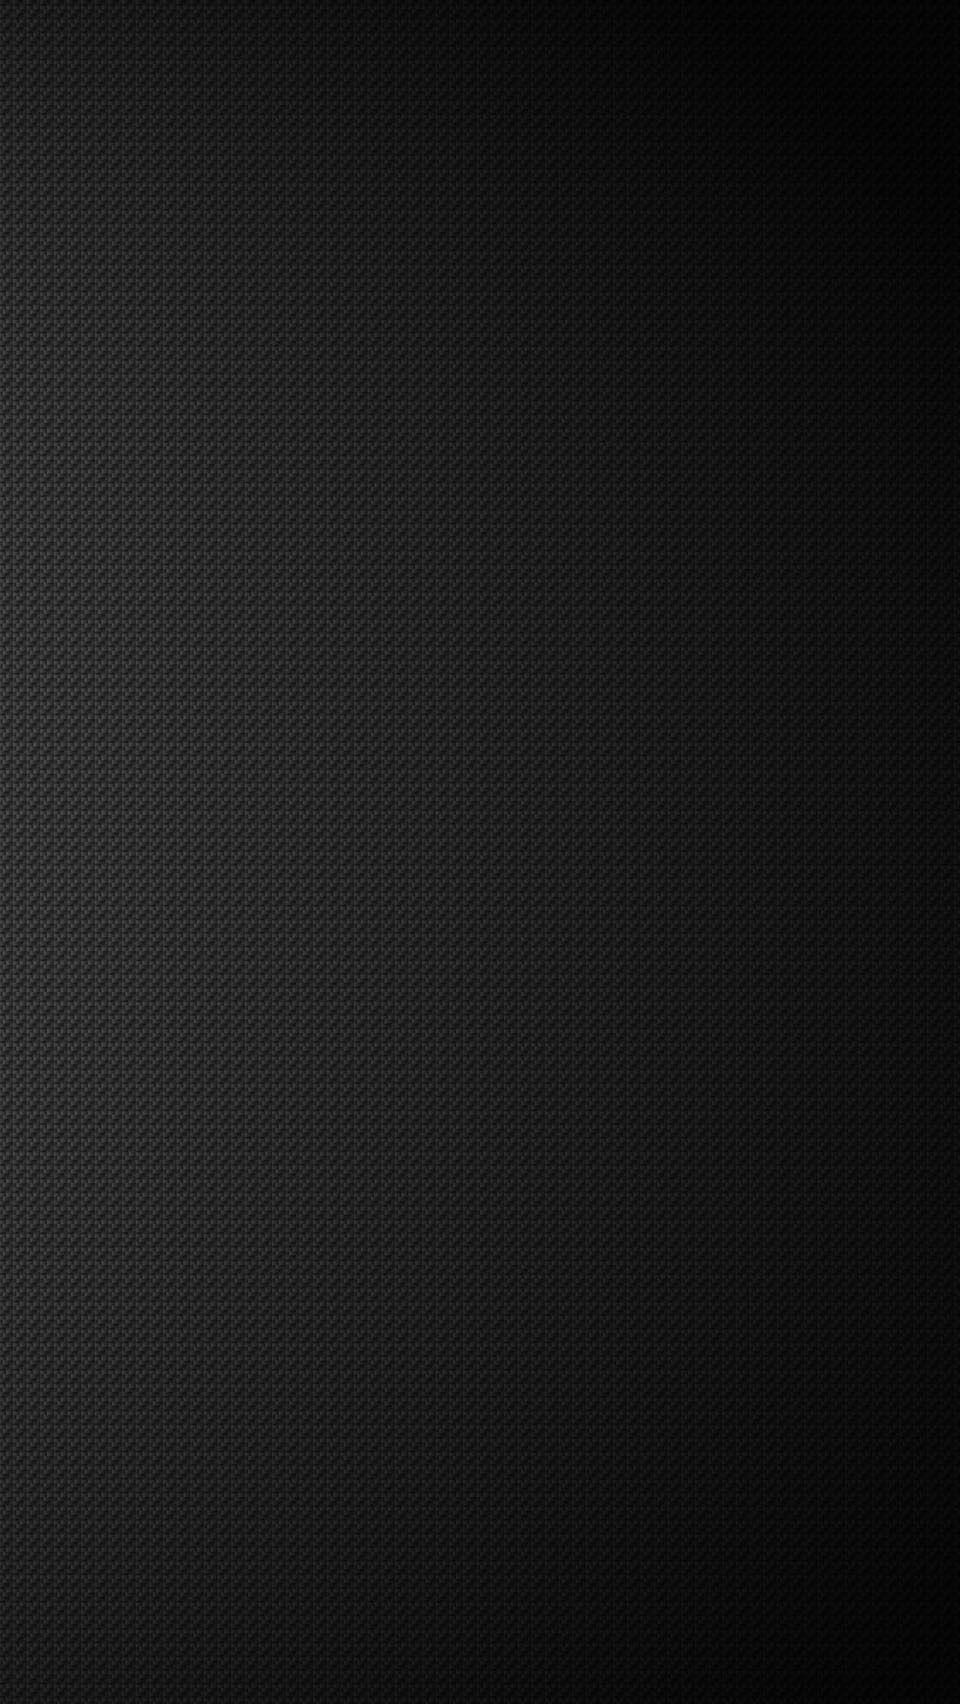 Carbon Fiber Abstract Iphone Wallpapers And Backgrounds View On Bestiphonewallpapershd Com Pure Black Wallpaper Plain Black Wallpaper Black Wallpaper